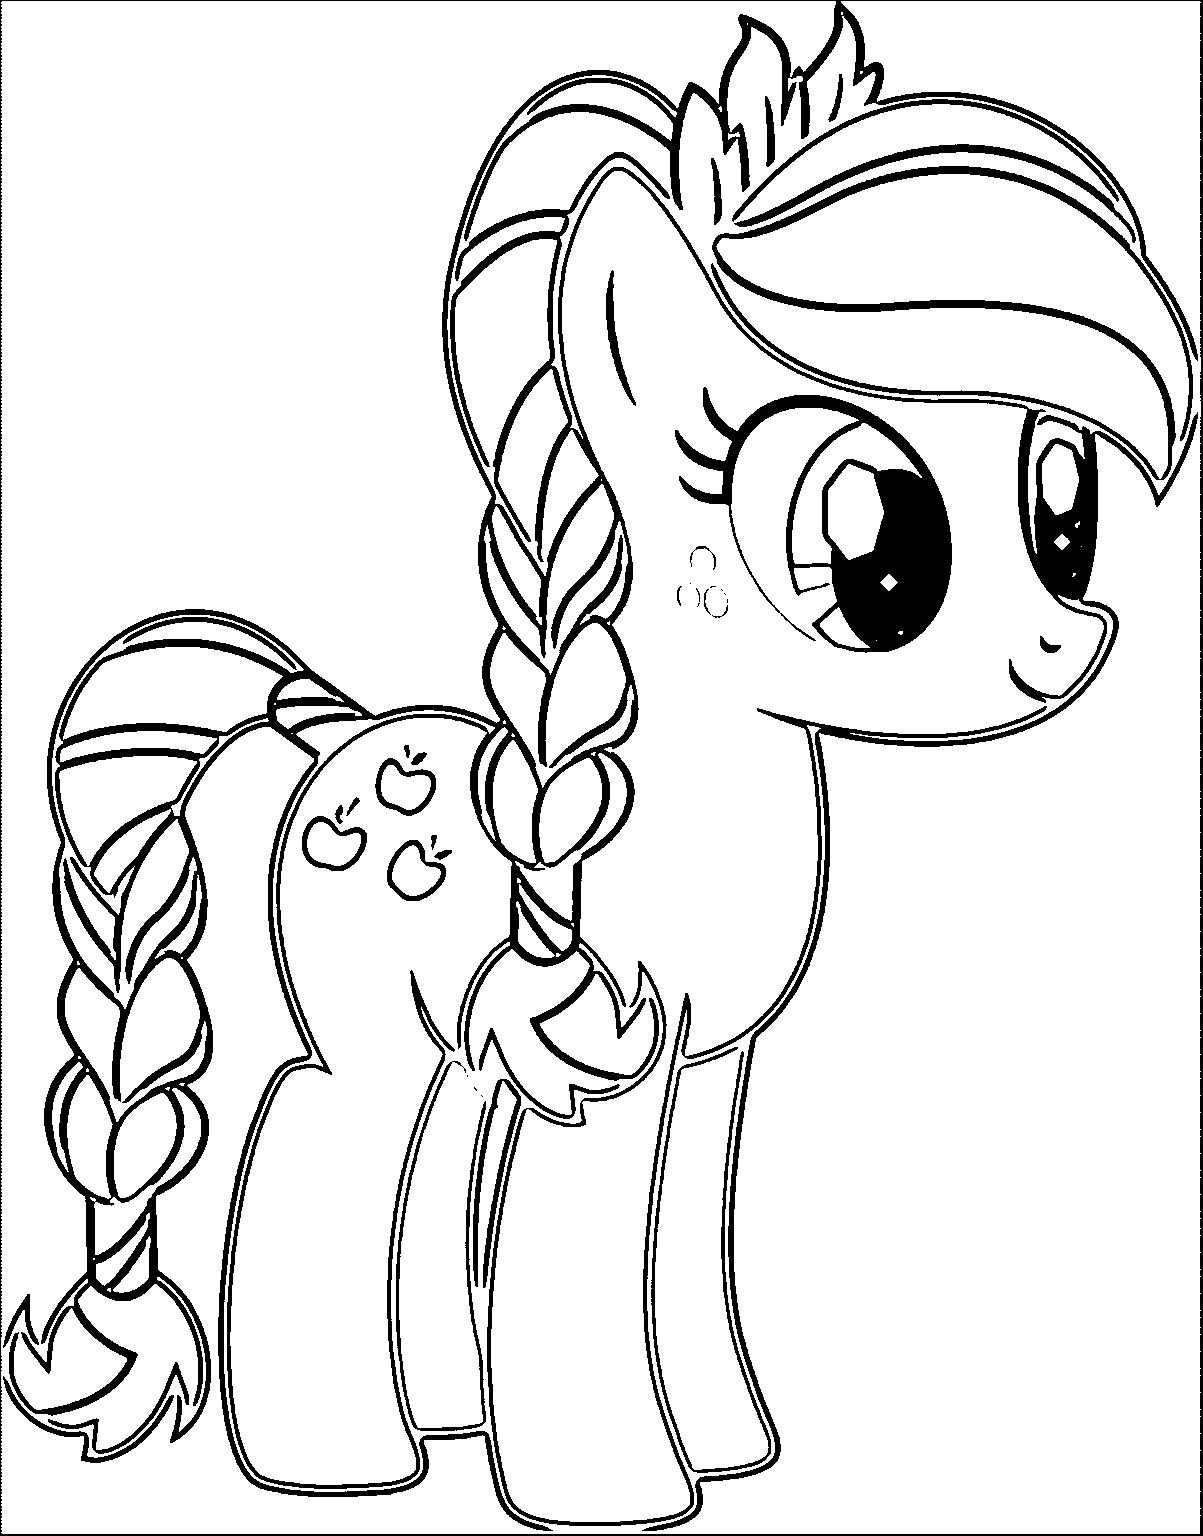 Little Pony Coloring Pages My little pony coloring, Pony